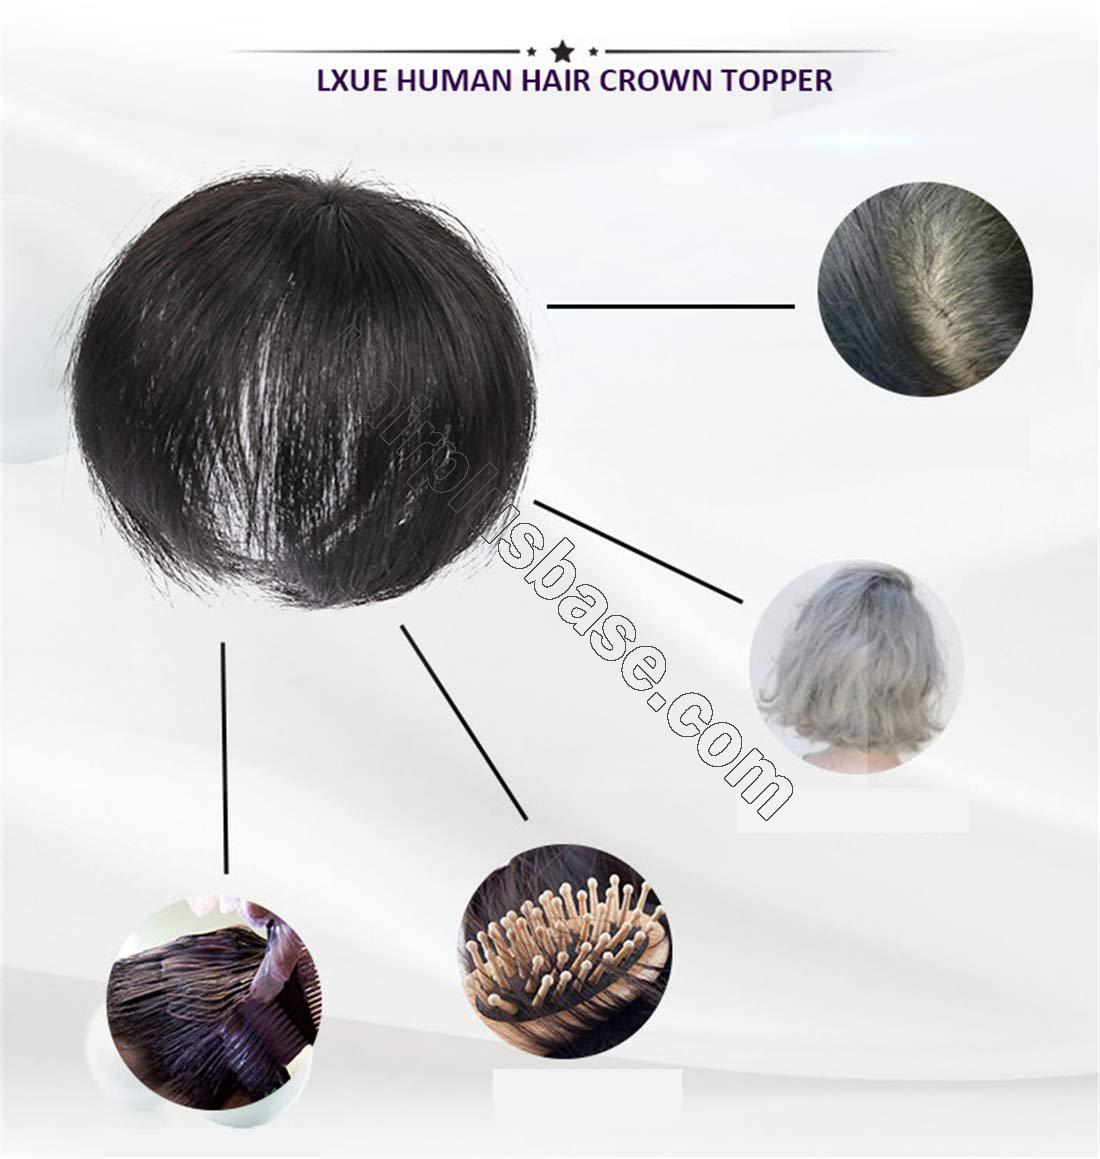 Real Human Hair Crown Toppers for Women with Bald Spot, Clip in Top Hairpieces Toupee for Women 4